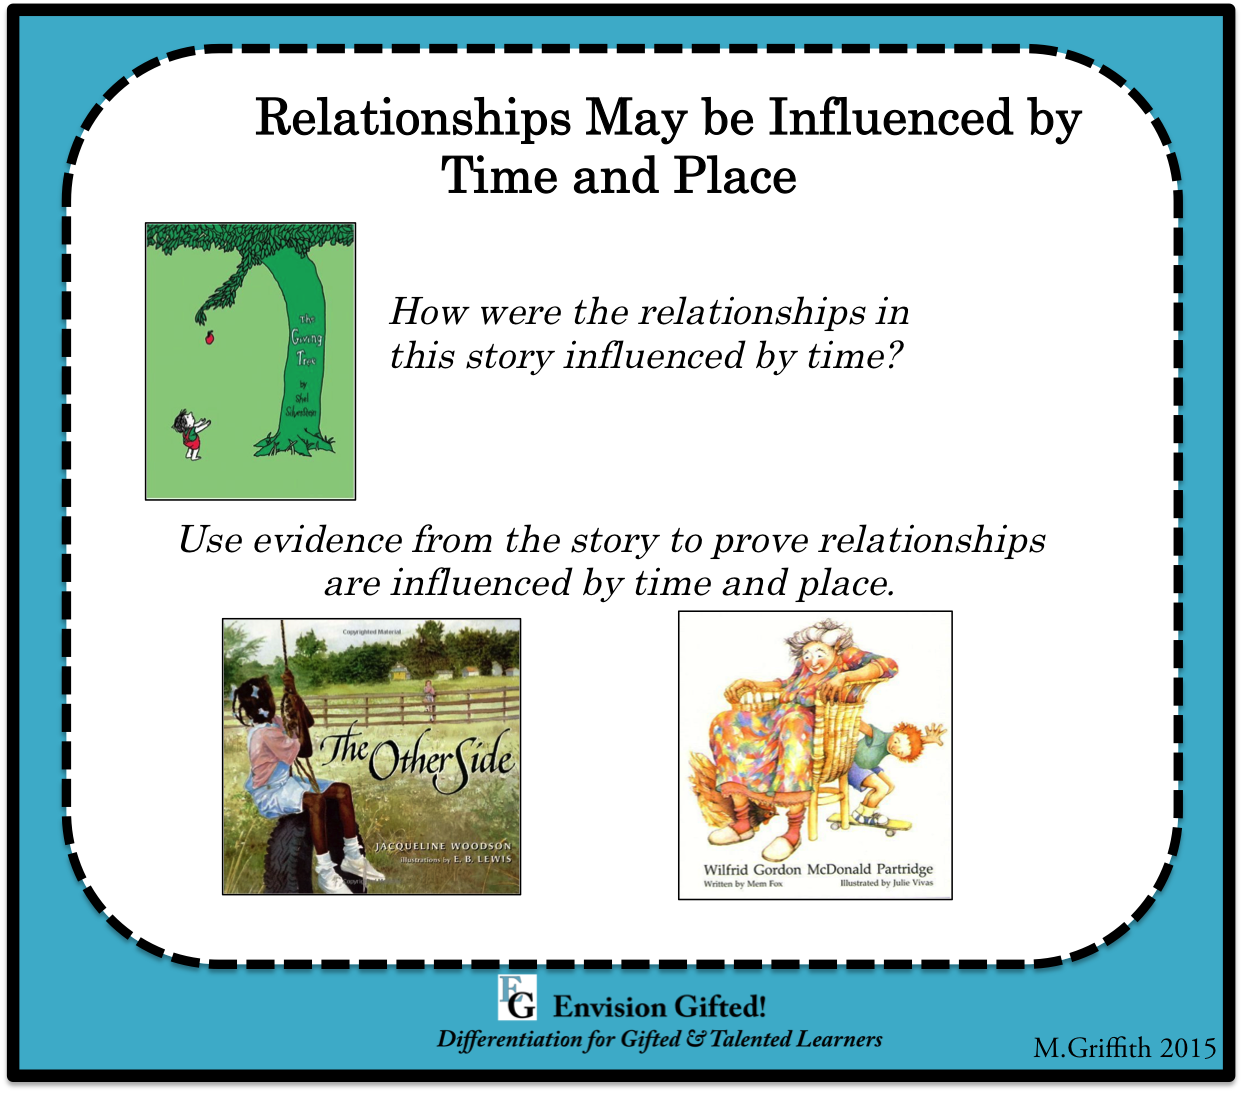 Envision Gifted. Universal Theme- Relationships Influenced by Time and Place